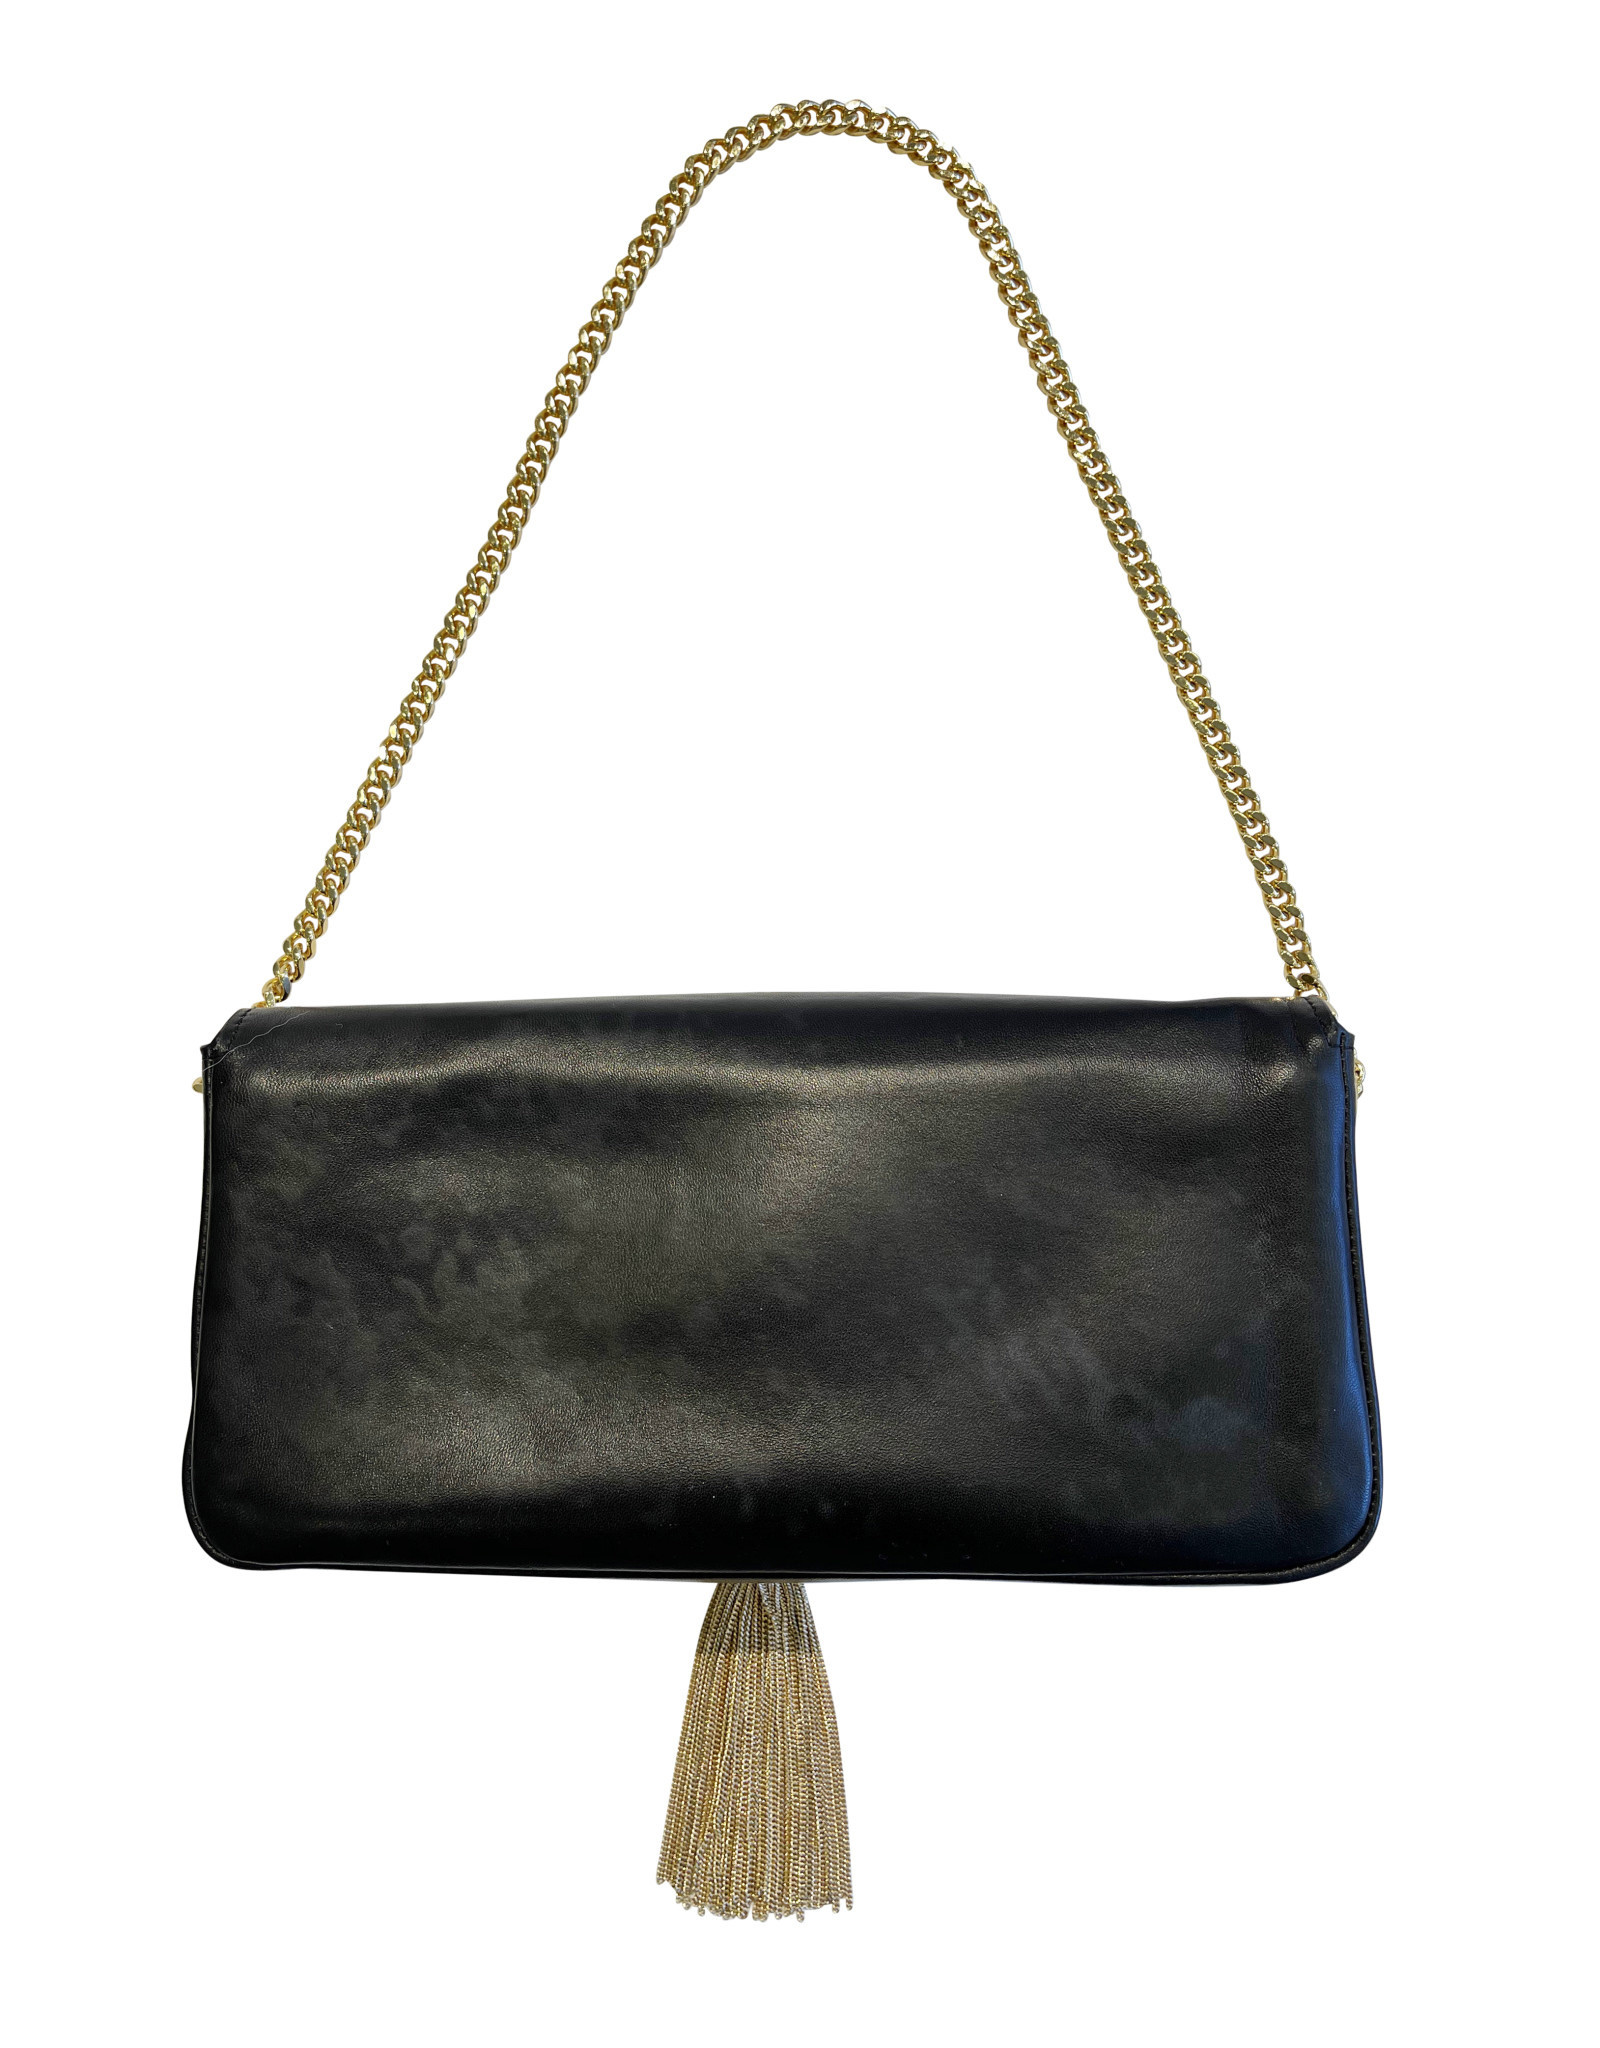 Wyld Blue Saint Laurent Tassel Bag